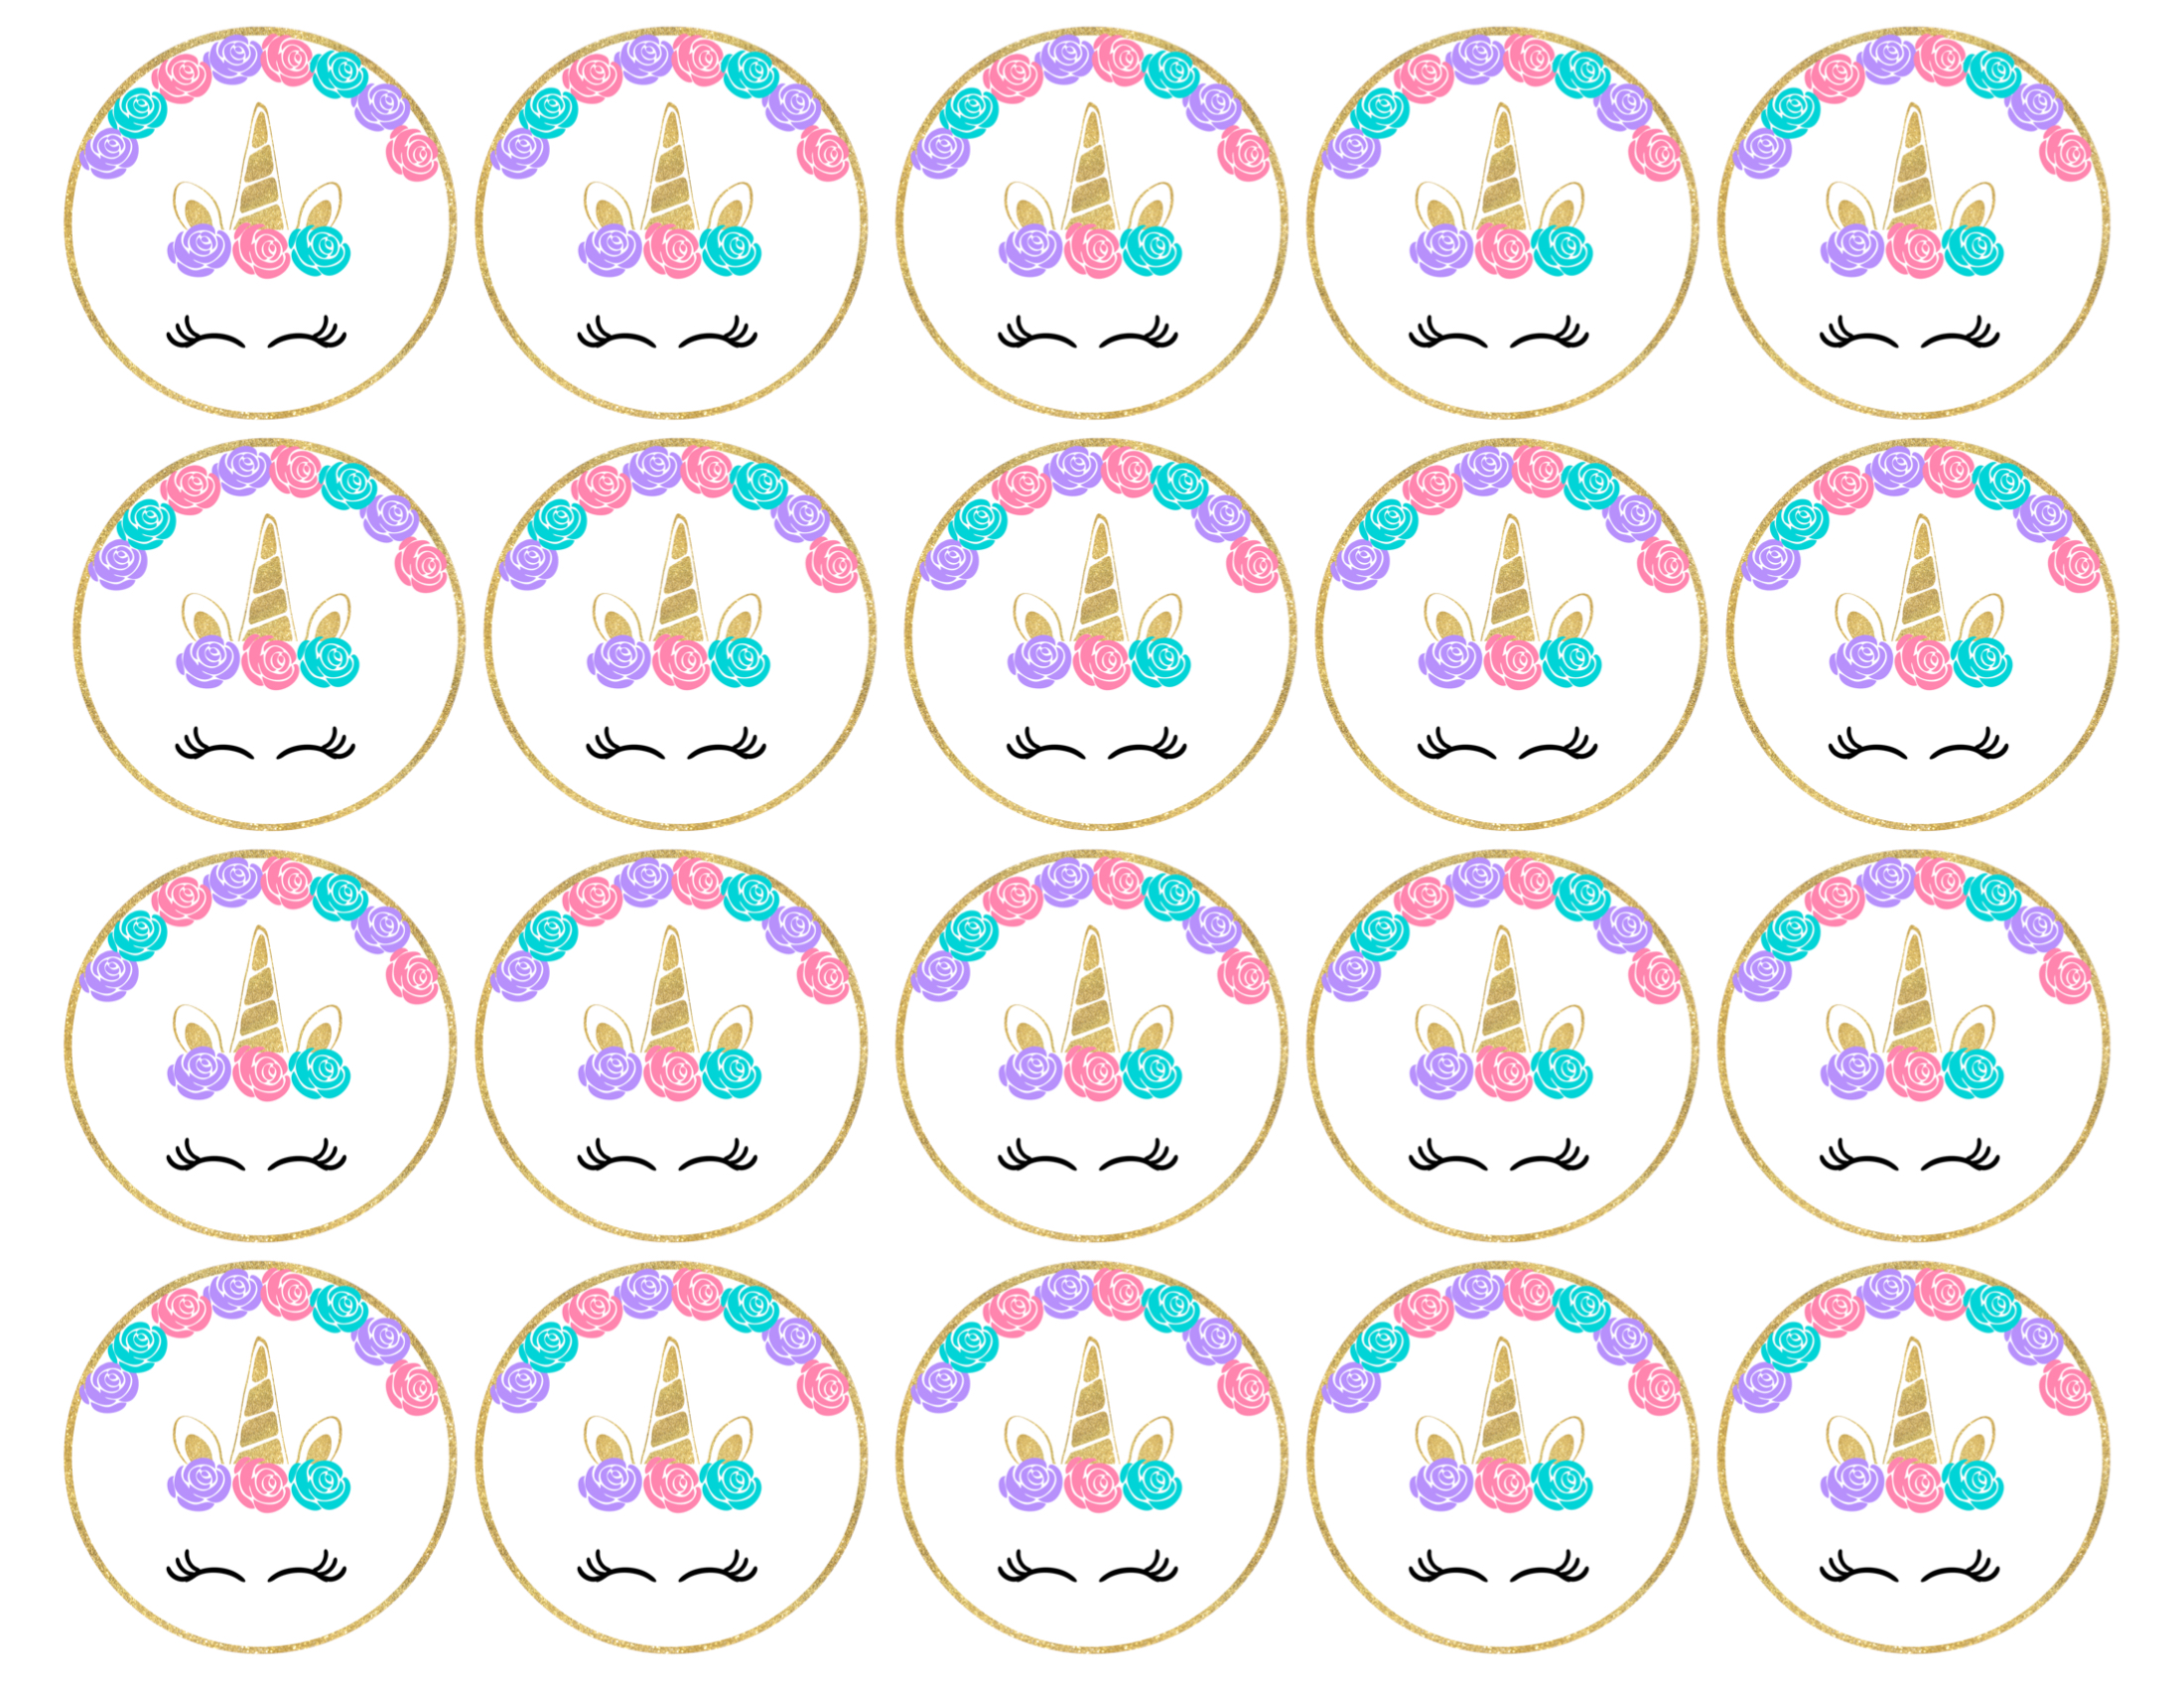 photo about Unicorn Cupcake Toppers Printable known as Cost-free Printable Unicorn Cupcake Toppers - Paper Path Layout